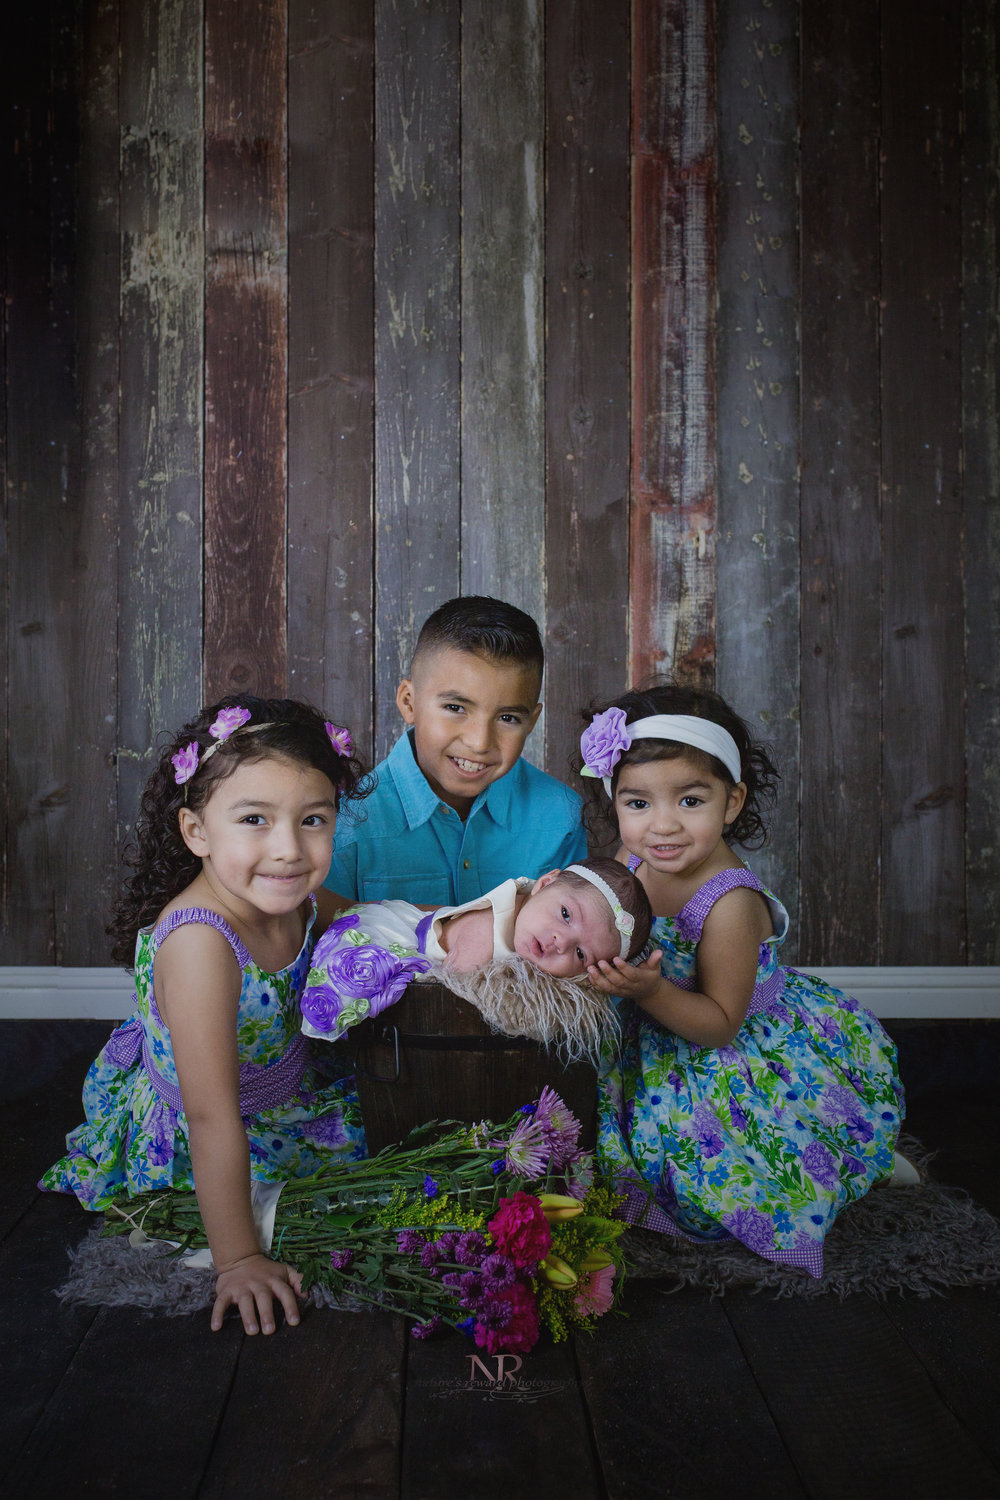 One image and all the kids. The real struggle in an image like this is actually the 2-3 year old siblings.  They need to have their pictures done immediately as they will not last long.